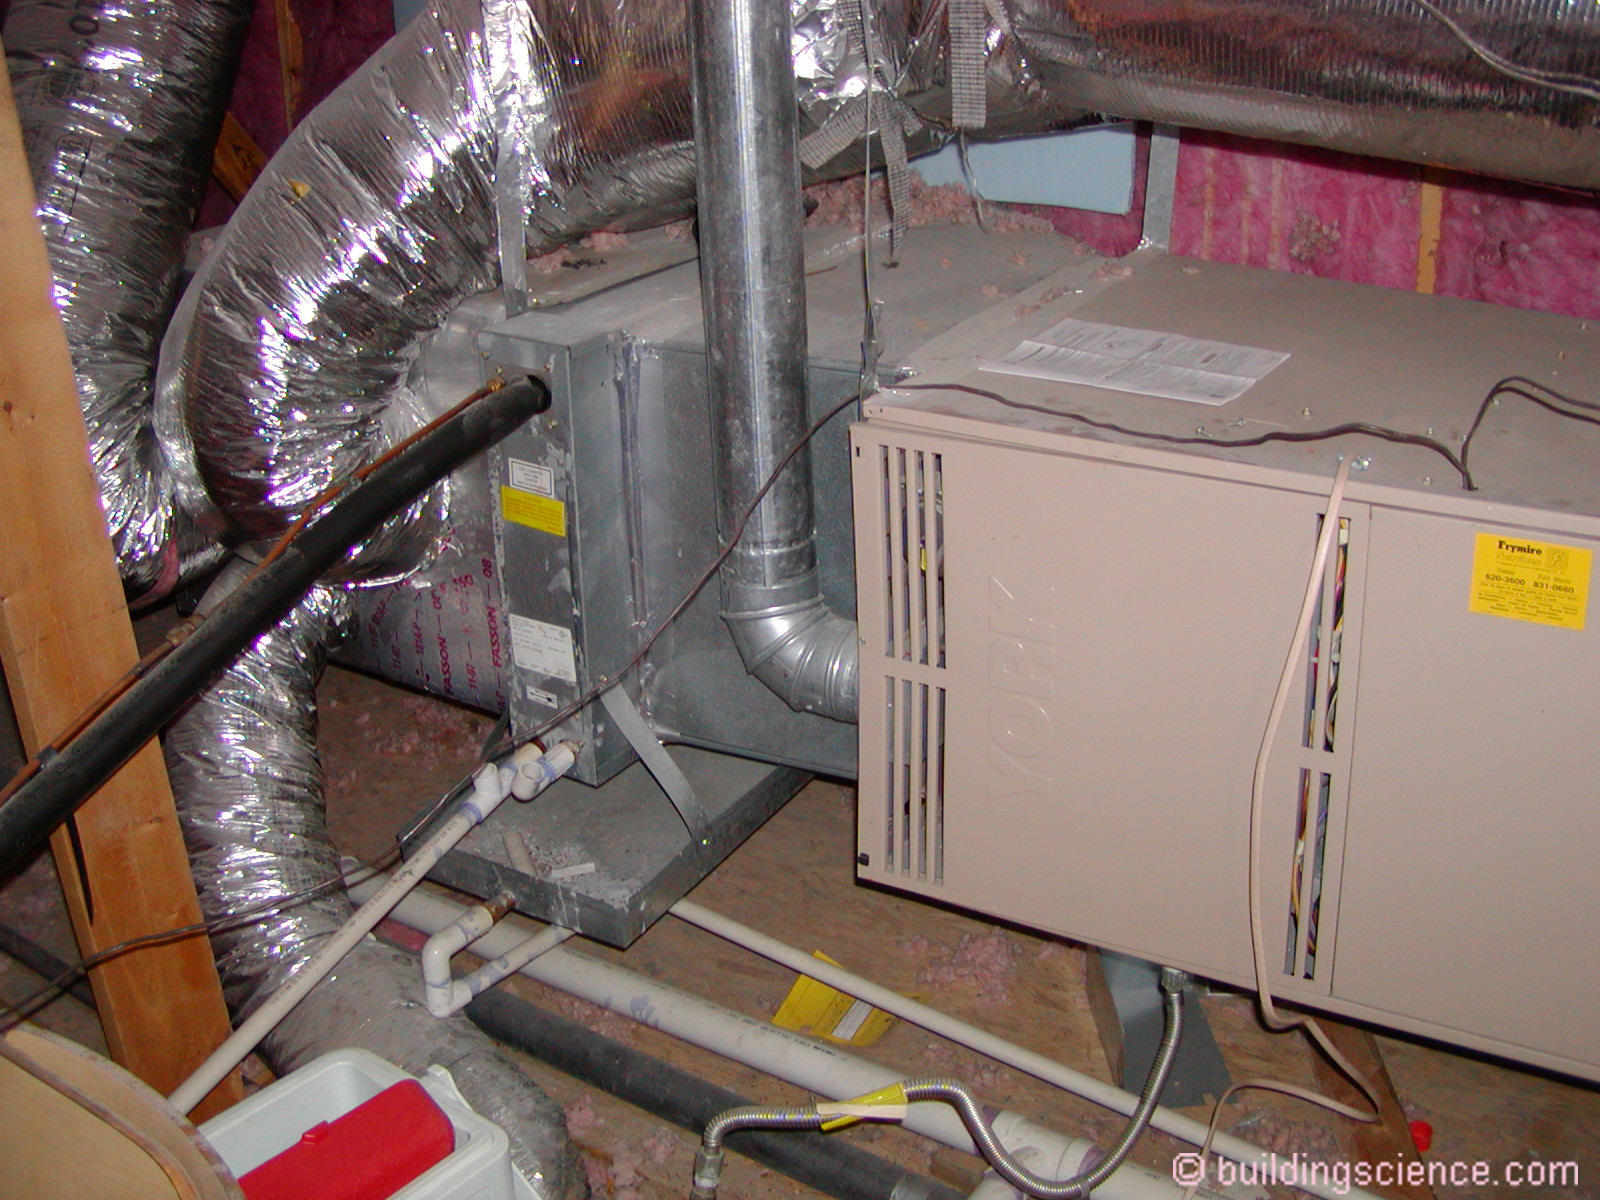 medium resolution of photograph 2 attic air conditioner and furnace standard vented combustion gas furnace with a single stage air conditioner located in a south texas attic